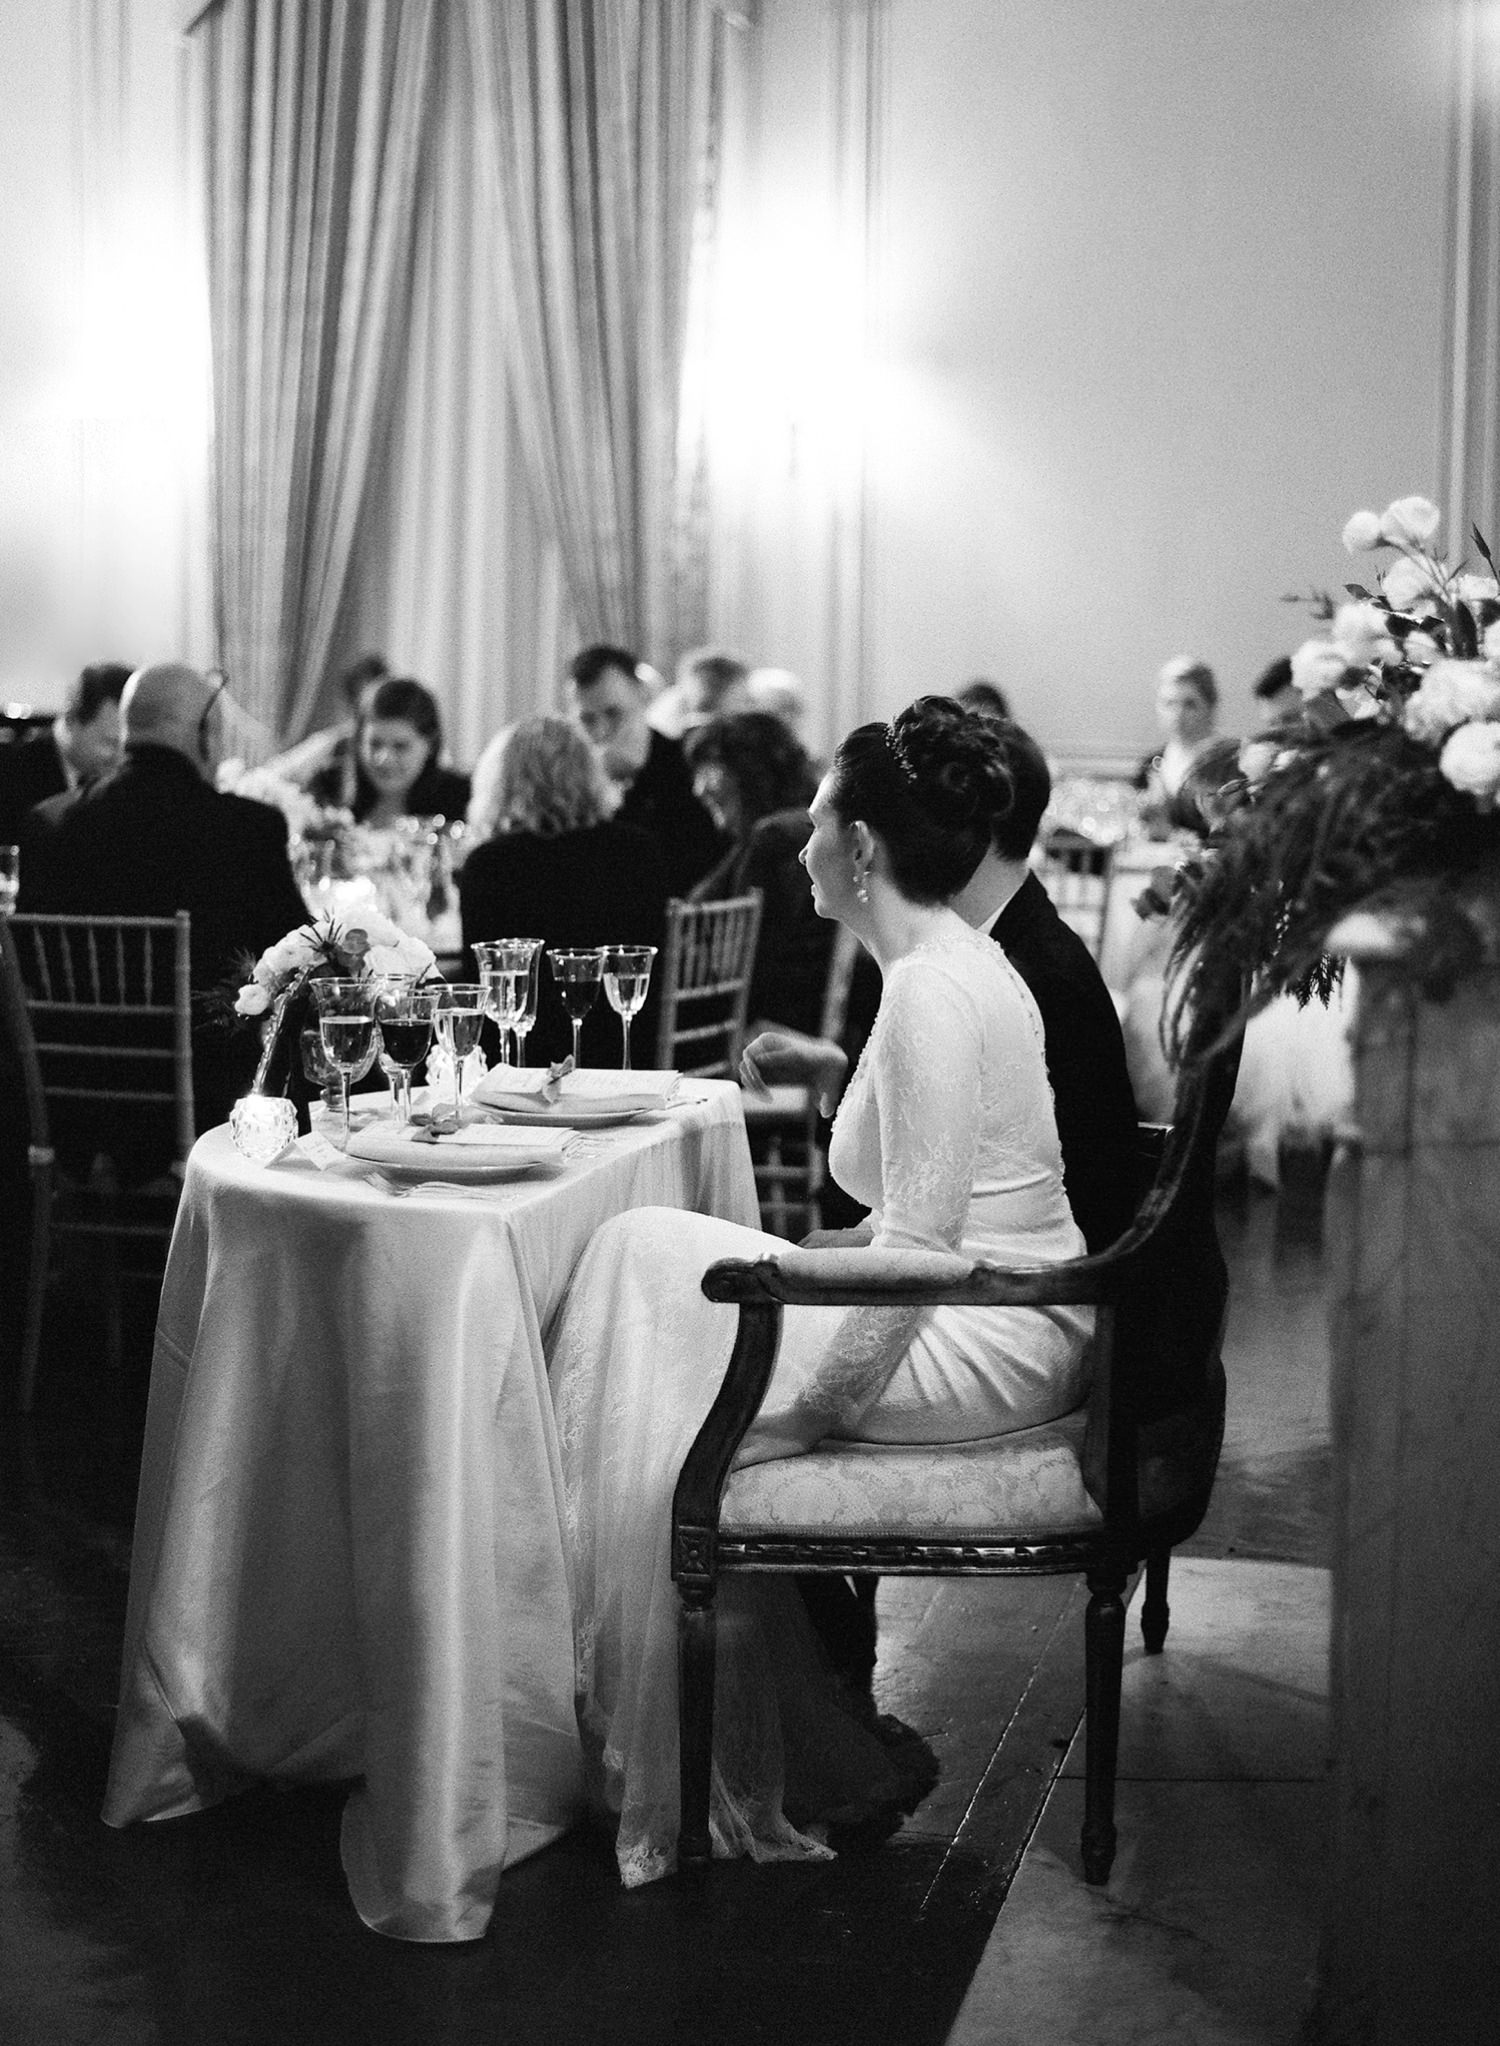 meridian house wedding reception, fine art film photographer